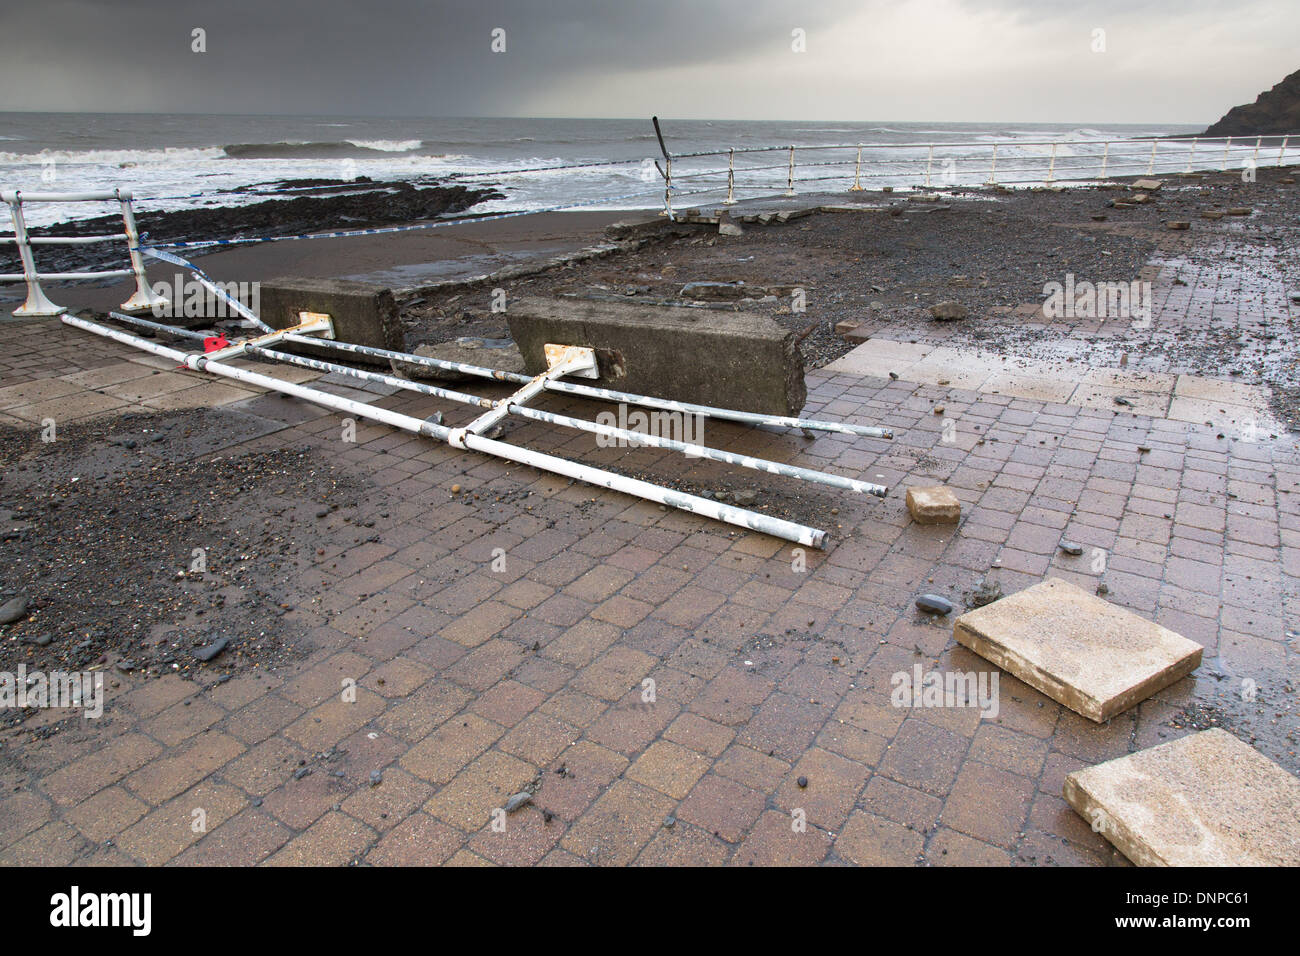 Aberystwyth, UK. 03rd Jan, 2014. Damage on Aberystwyth seafront. Strong winds and a spring tide caused waves to batter the west Wales coast. The promenade at Aberystwyth was closed to the public as waves tore over the sea wall, breaking sea defences and spreading debris over a wide area. Police and coastguards cordoned-off the north and south promenades at high tide, and a fire engine became stranded. Credit:  atgof.co/Alamy Live News - Stock Image